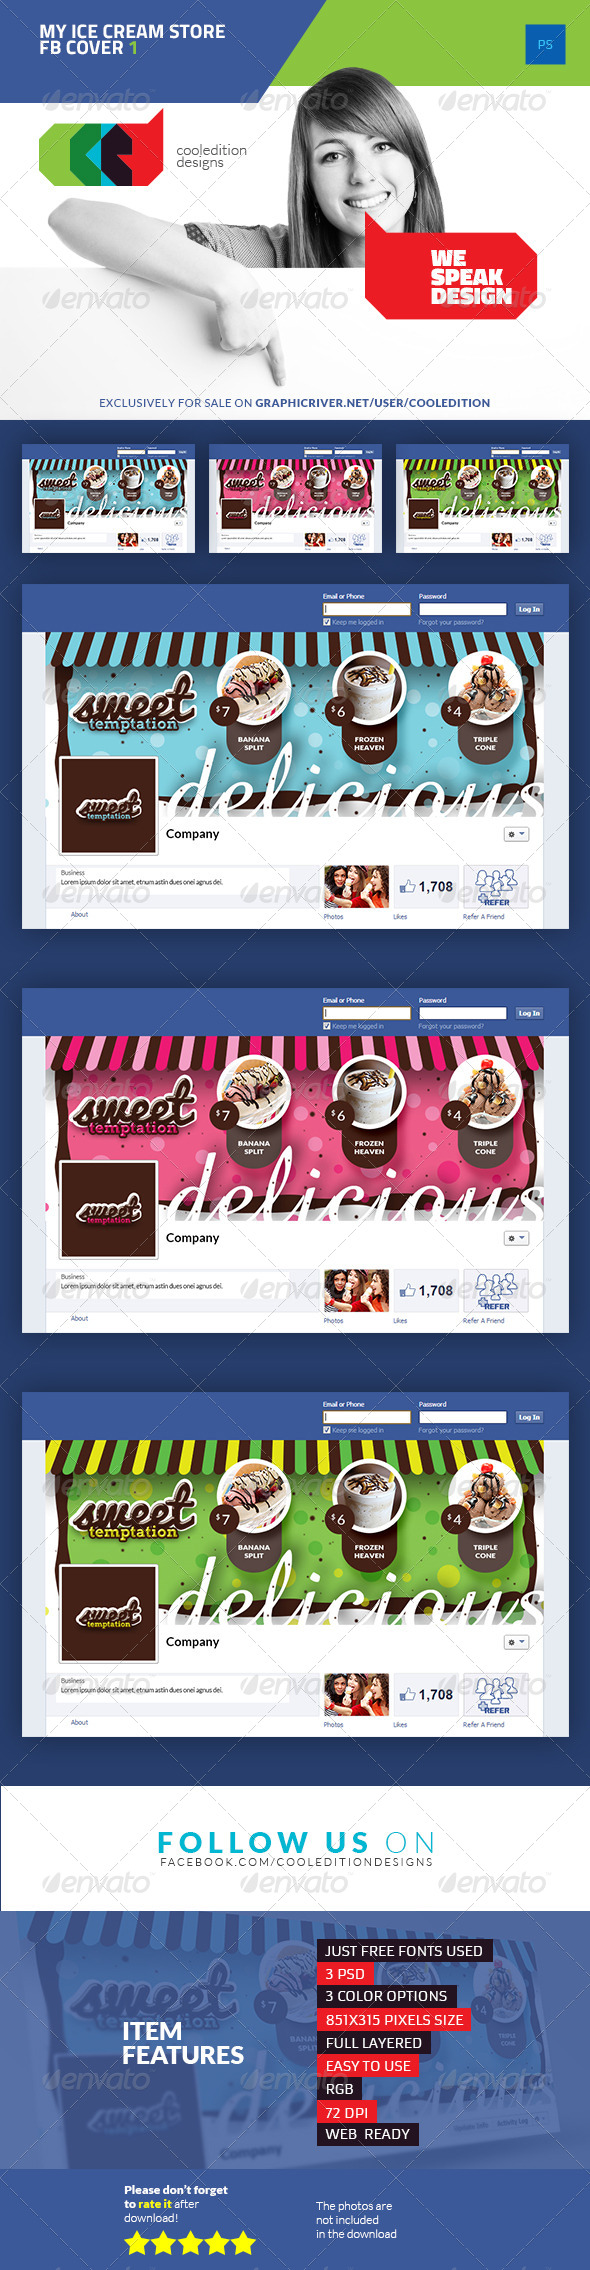 GraphicRiver My Ice Cream Store Facebook Cover 1 7381759